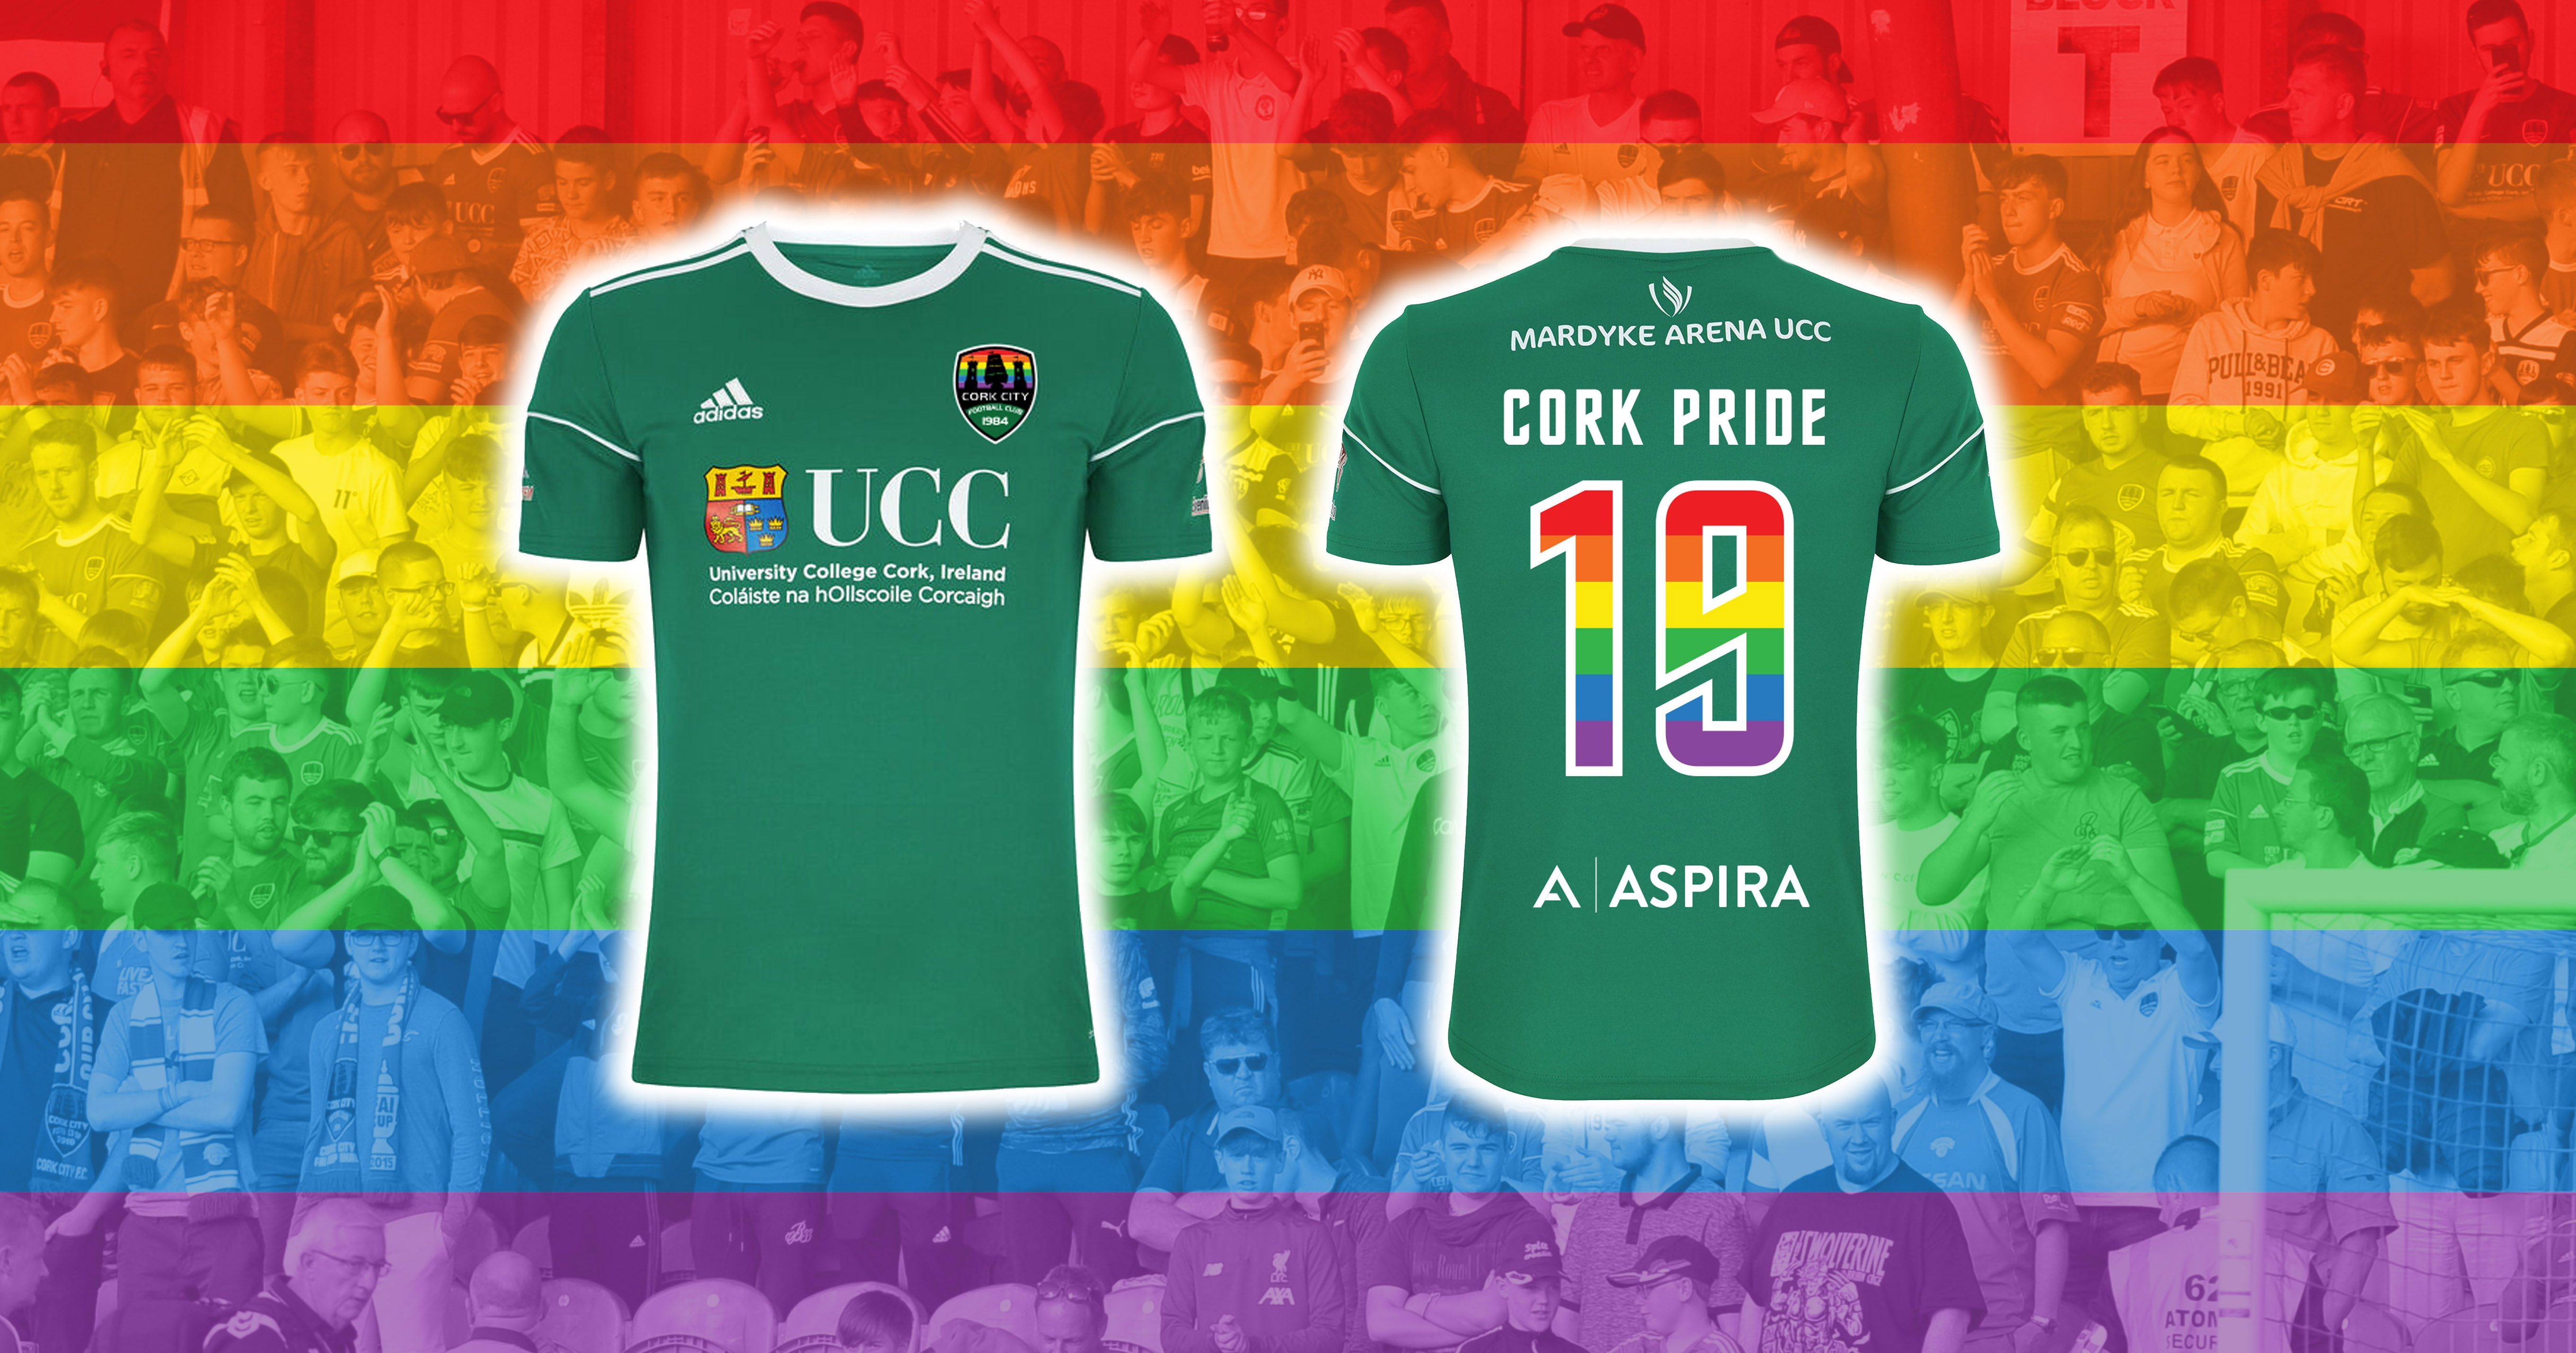 Cork City FC will wear these rainbow-numbered t-shirts at a match on August 2nd to show solidarity with the LGBT+ community